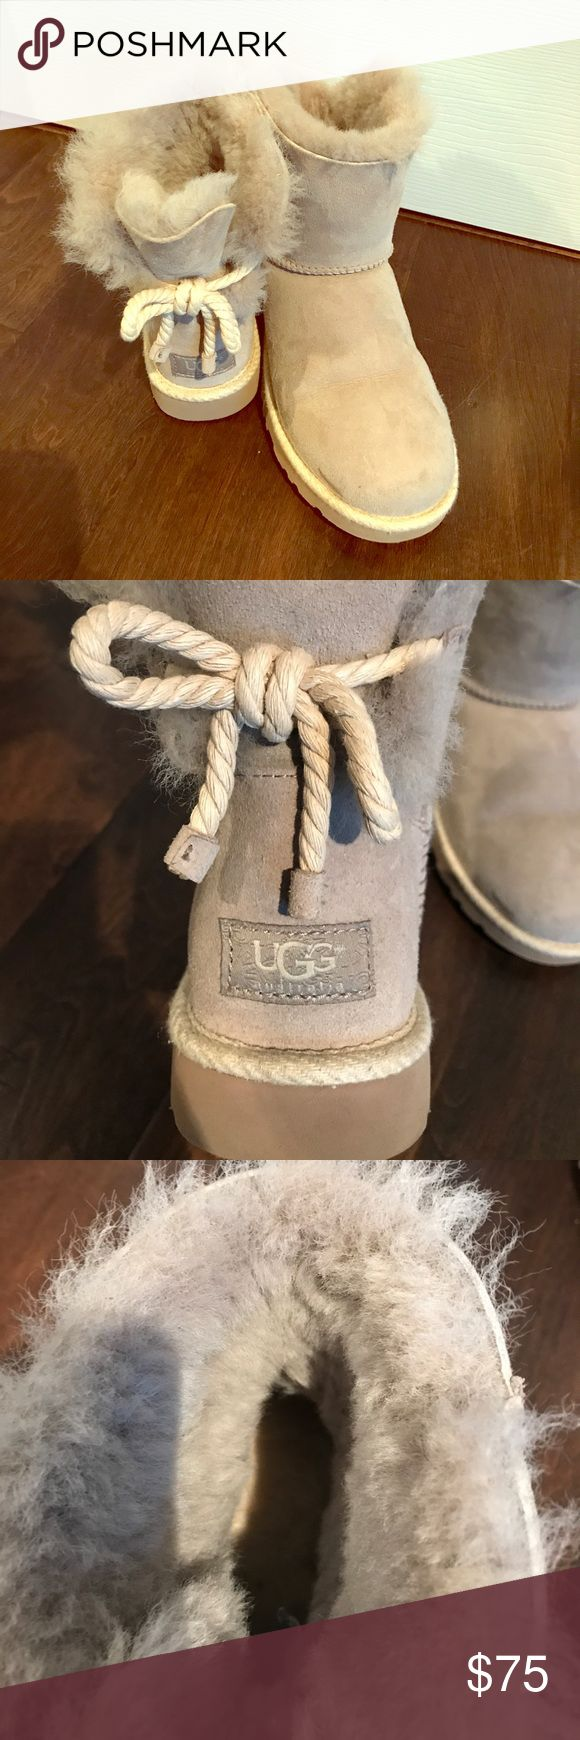 Grey Selene Classic Suede UGG Boots Womens size 7 Selene Classic suede boots in a light Grey with nautical rope tied on the backs. In very good condition worn only in the house minimal times. UGG Shoes Ankle Boots & Booties